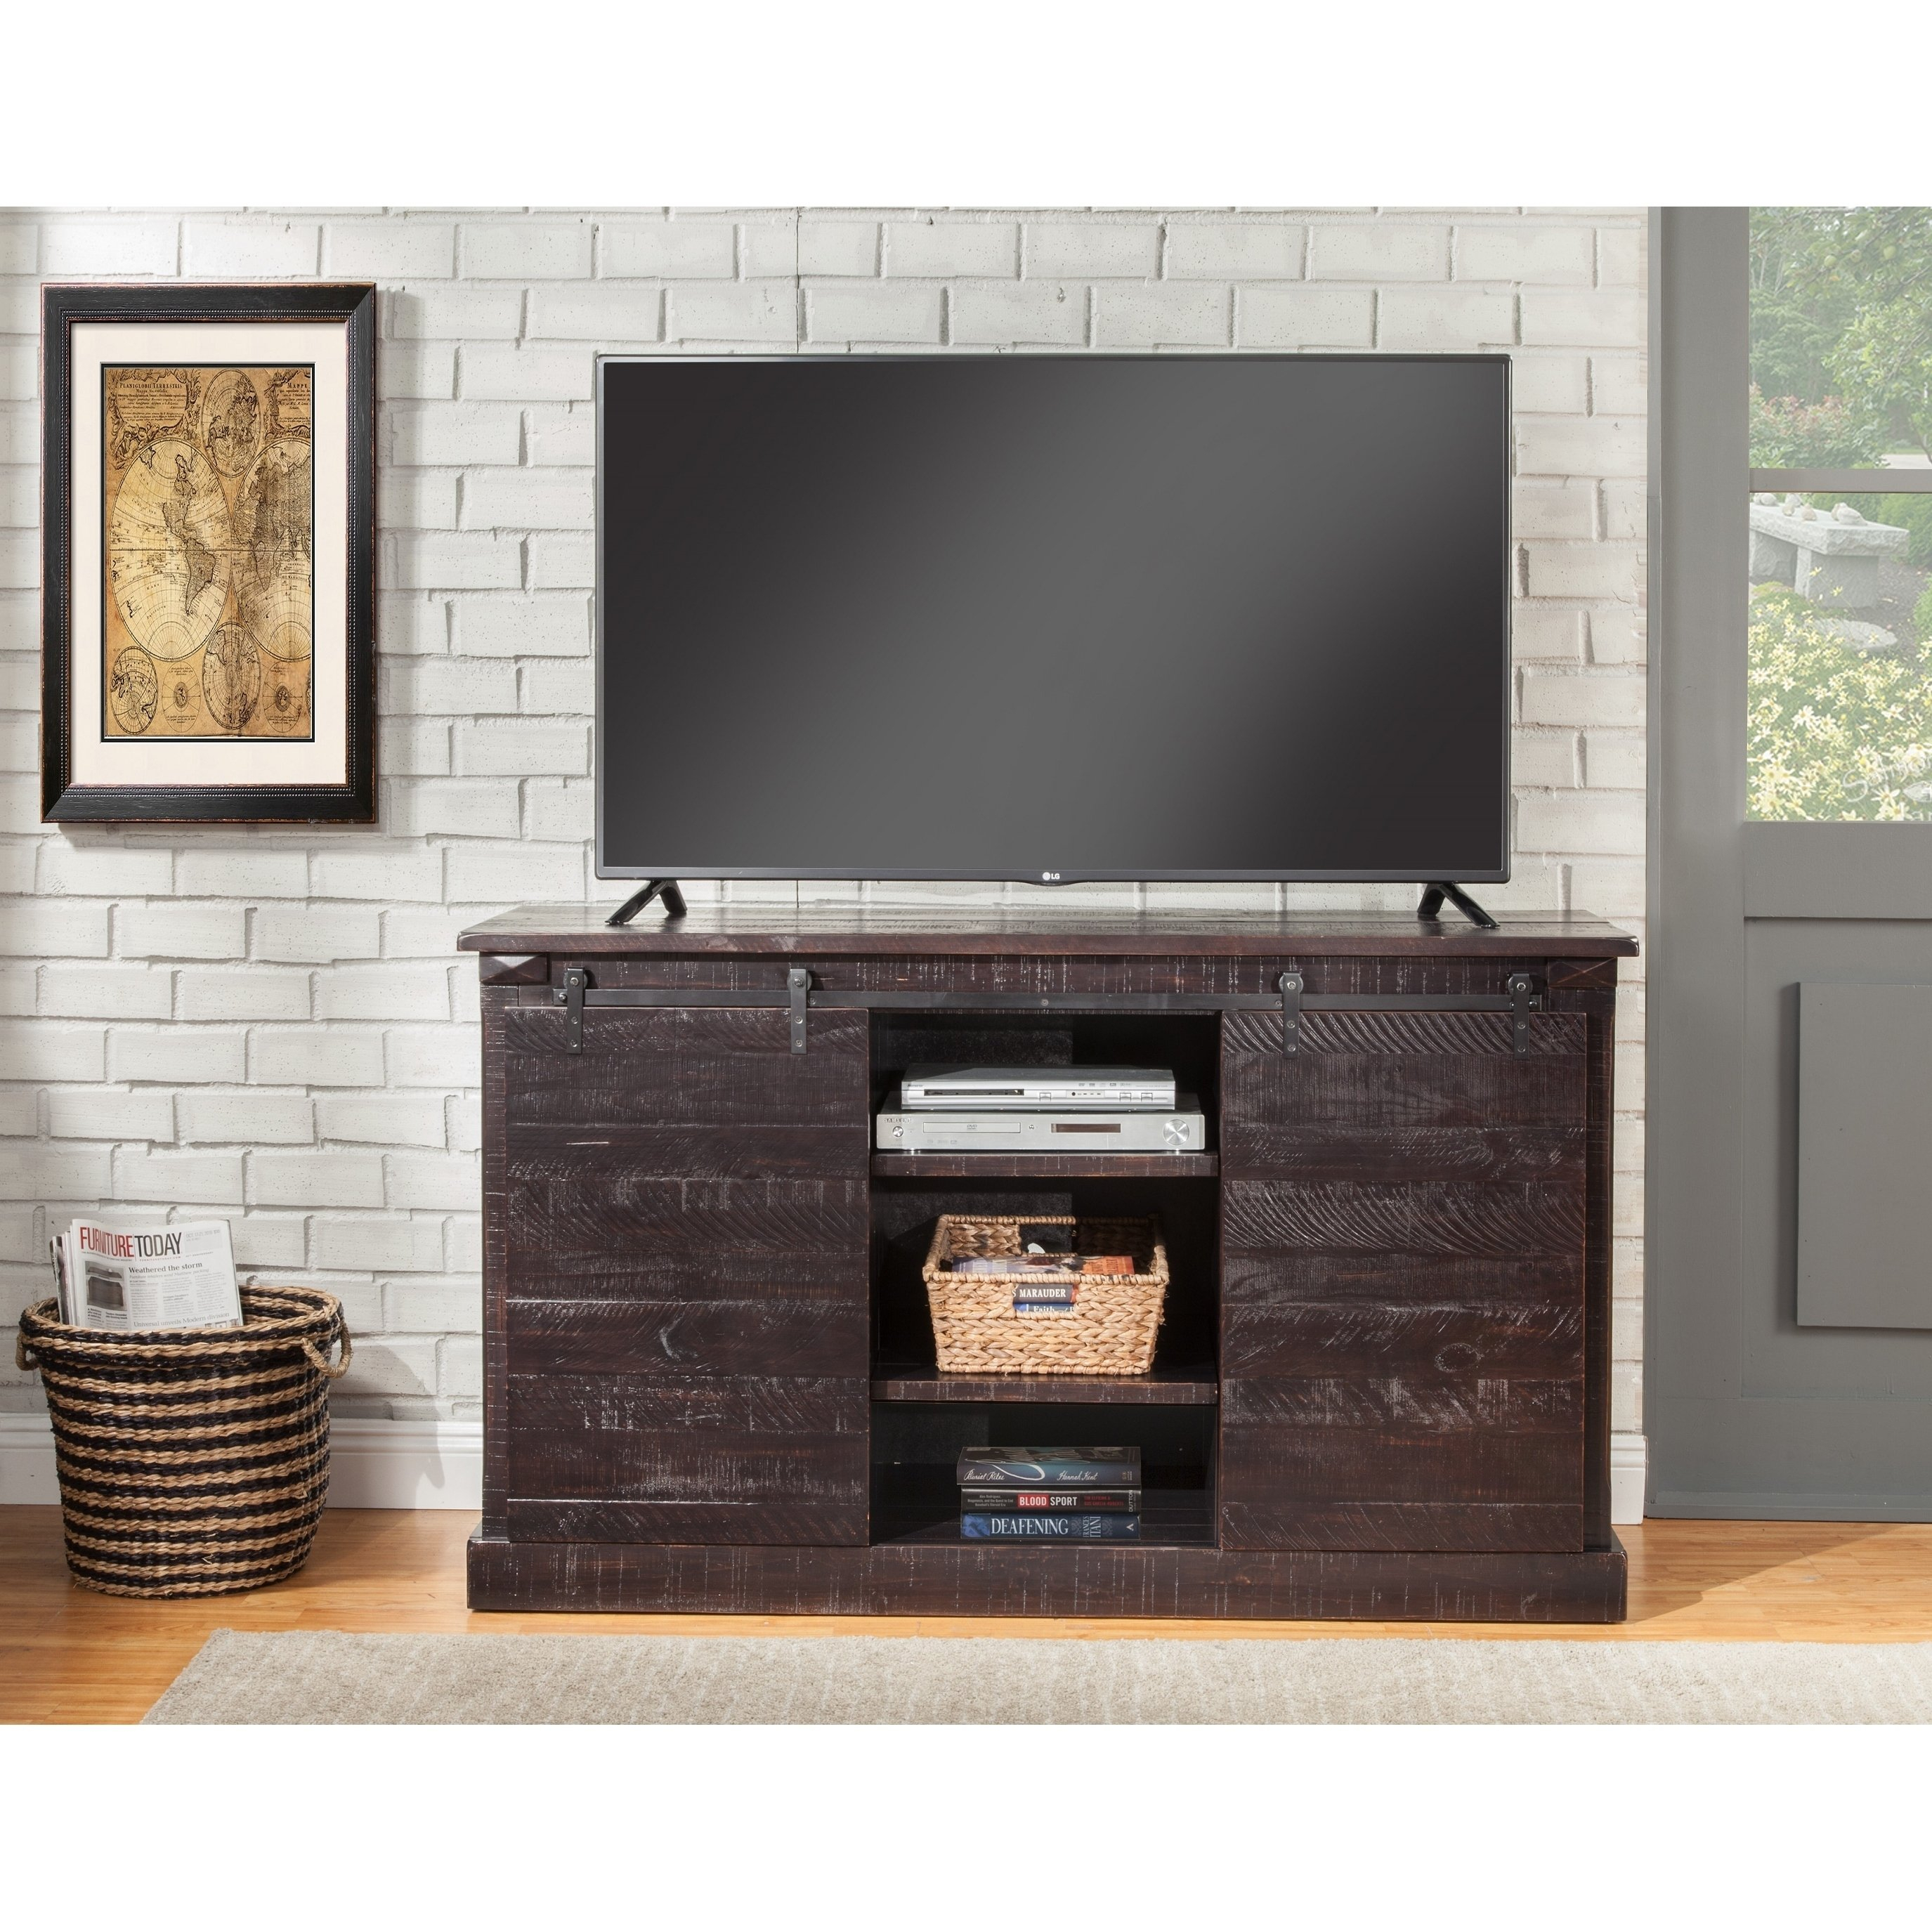 Buy Black, Rustic Tv Stands & Entertainment Centers Online At With Regard To Wakefield 97 Inch Tv Stands (View 10 of 30)